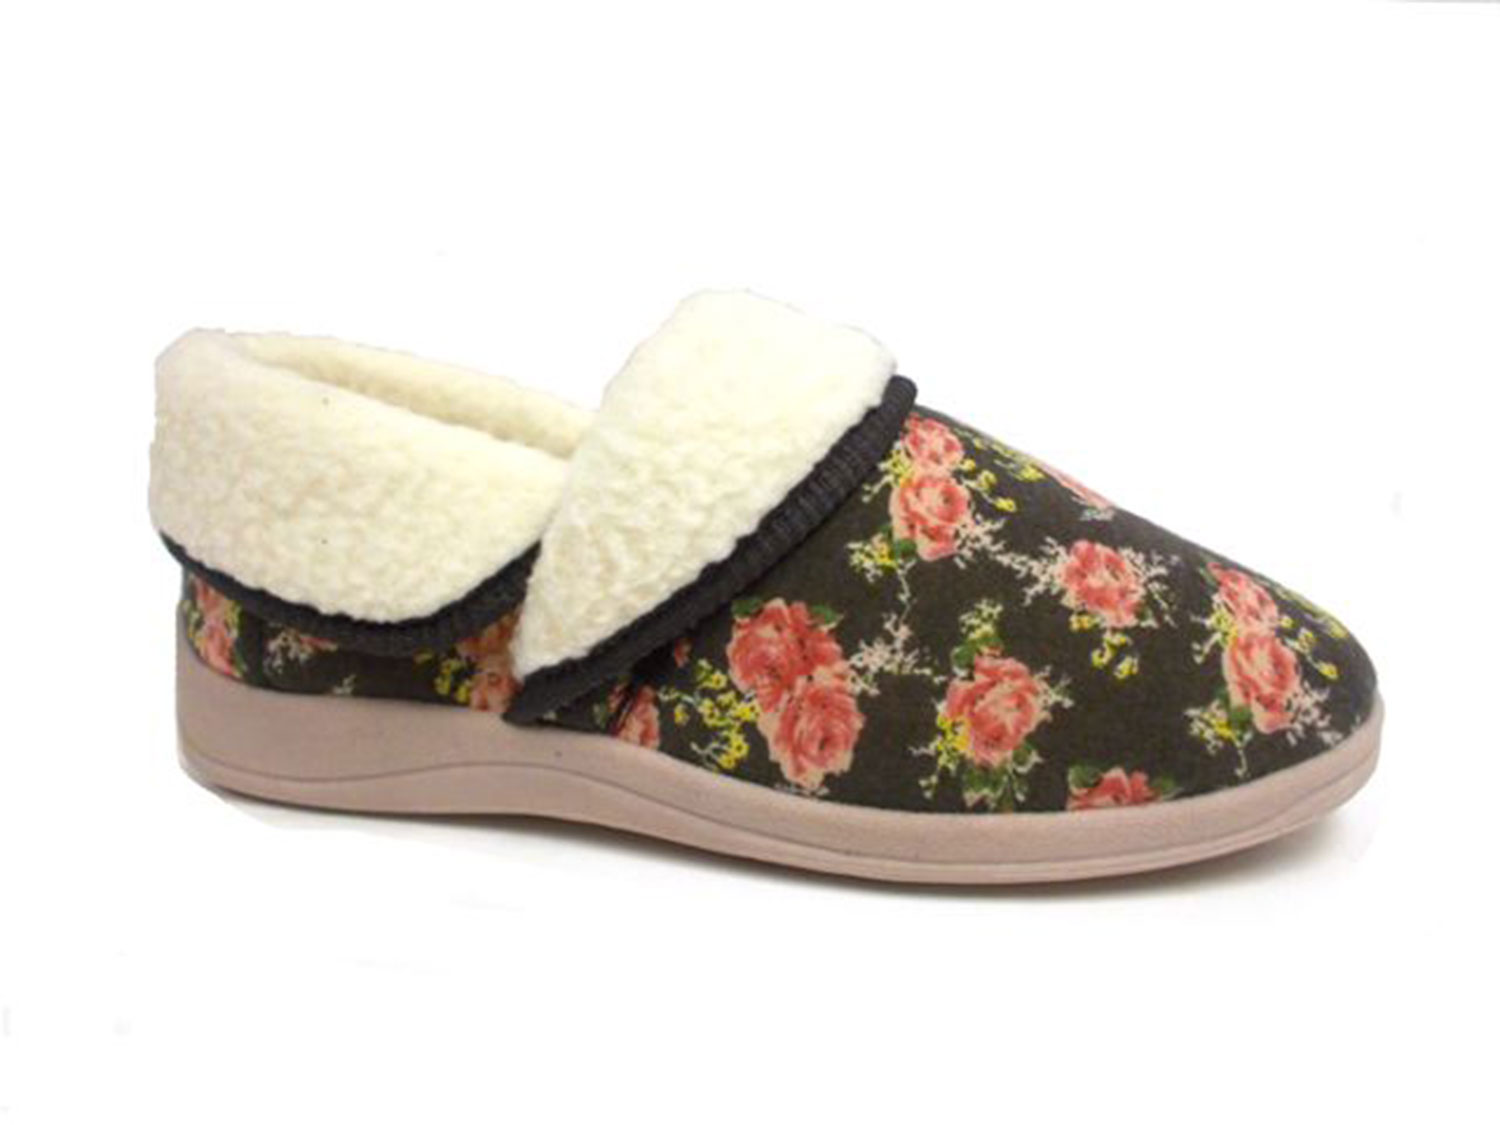 Ladies Womens New Dunlop House Slippers Wide Fit Soft Fur